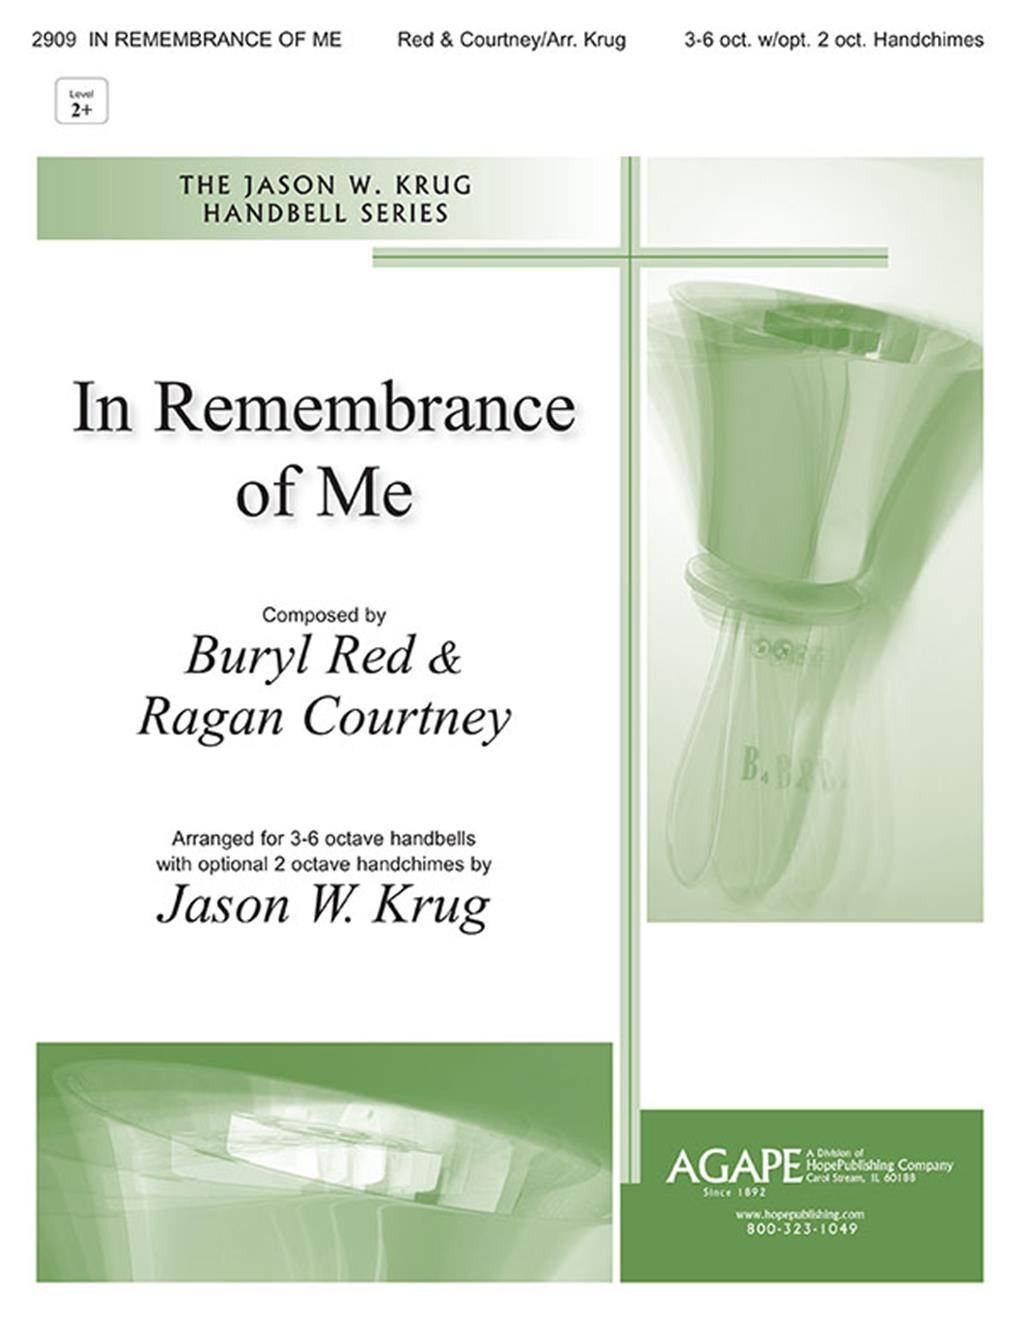 In Remembrance of Me - 3-6 Oct. Cover Image